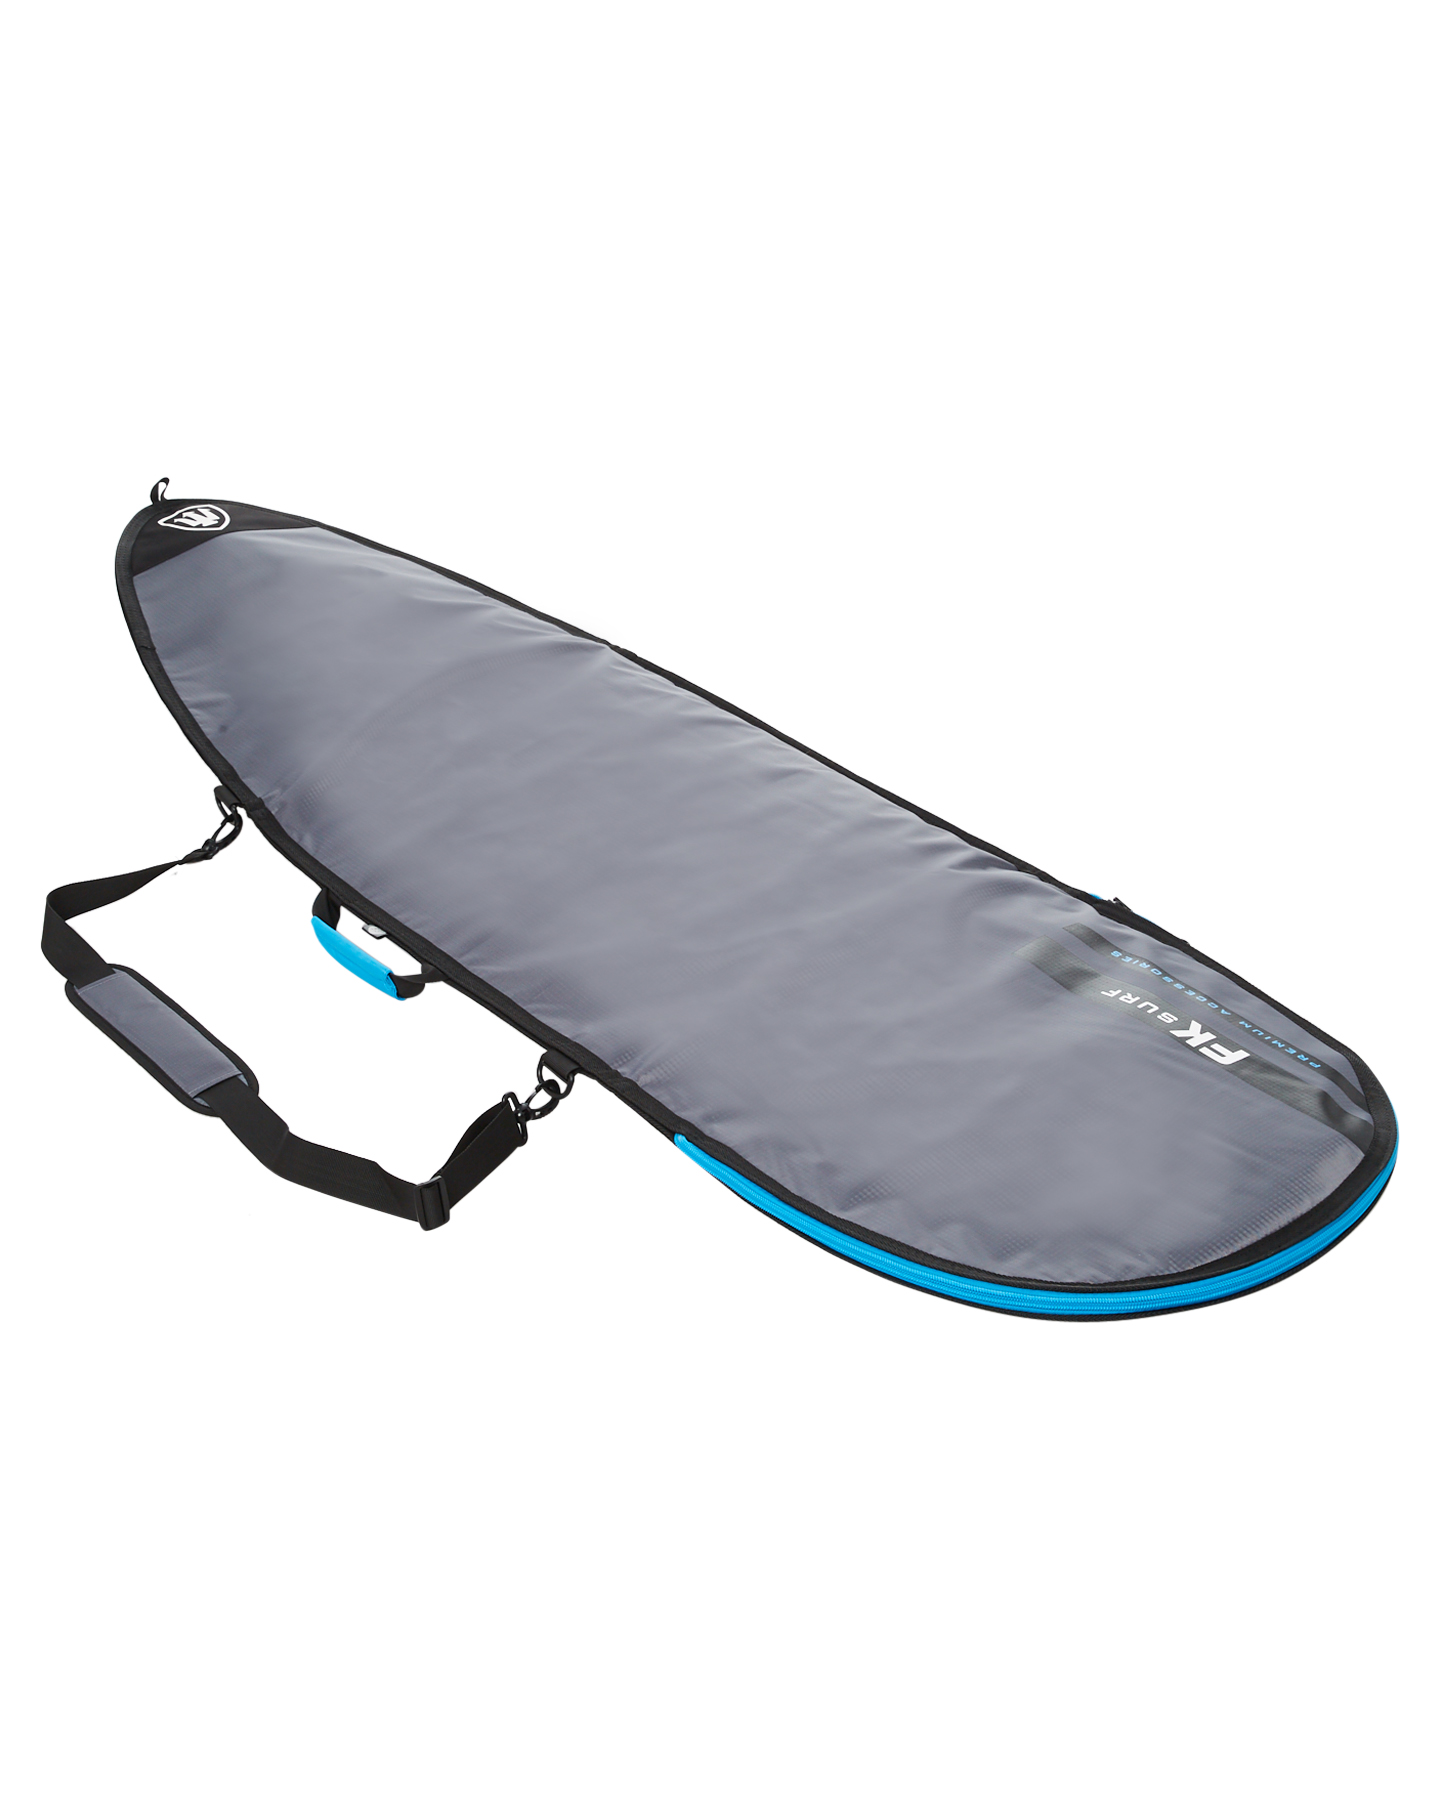 Fk Surf 5Ft8 - 6Ft7 All Rounder Surfboard Cover Charcoal Silver Charcoal Silver